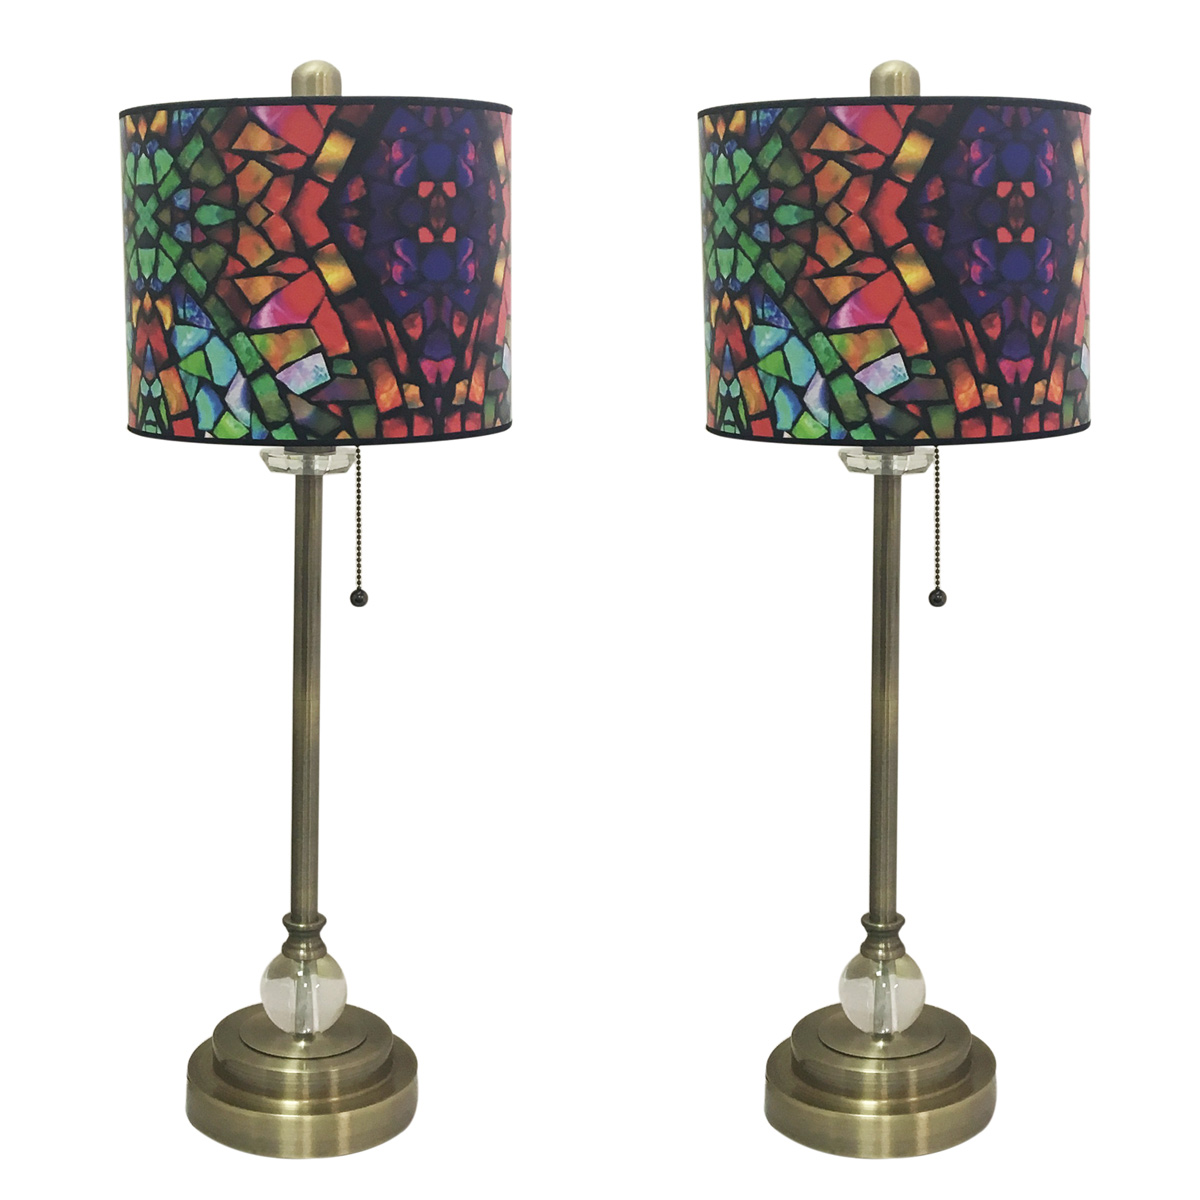 "Royal Designs 28"" Crystal and Antique Brass Buffet Lamp with Mosaic Stained Glass Design Hardback Lamp Shade, Set of 2"